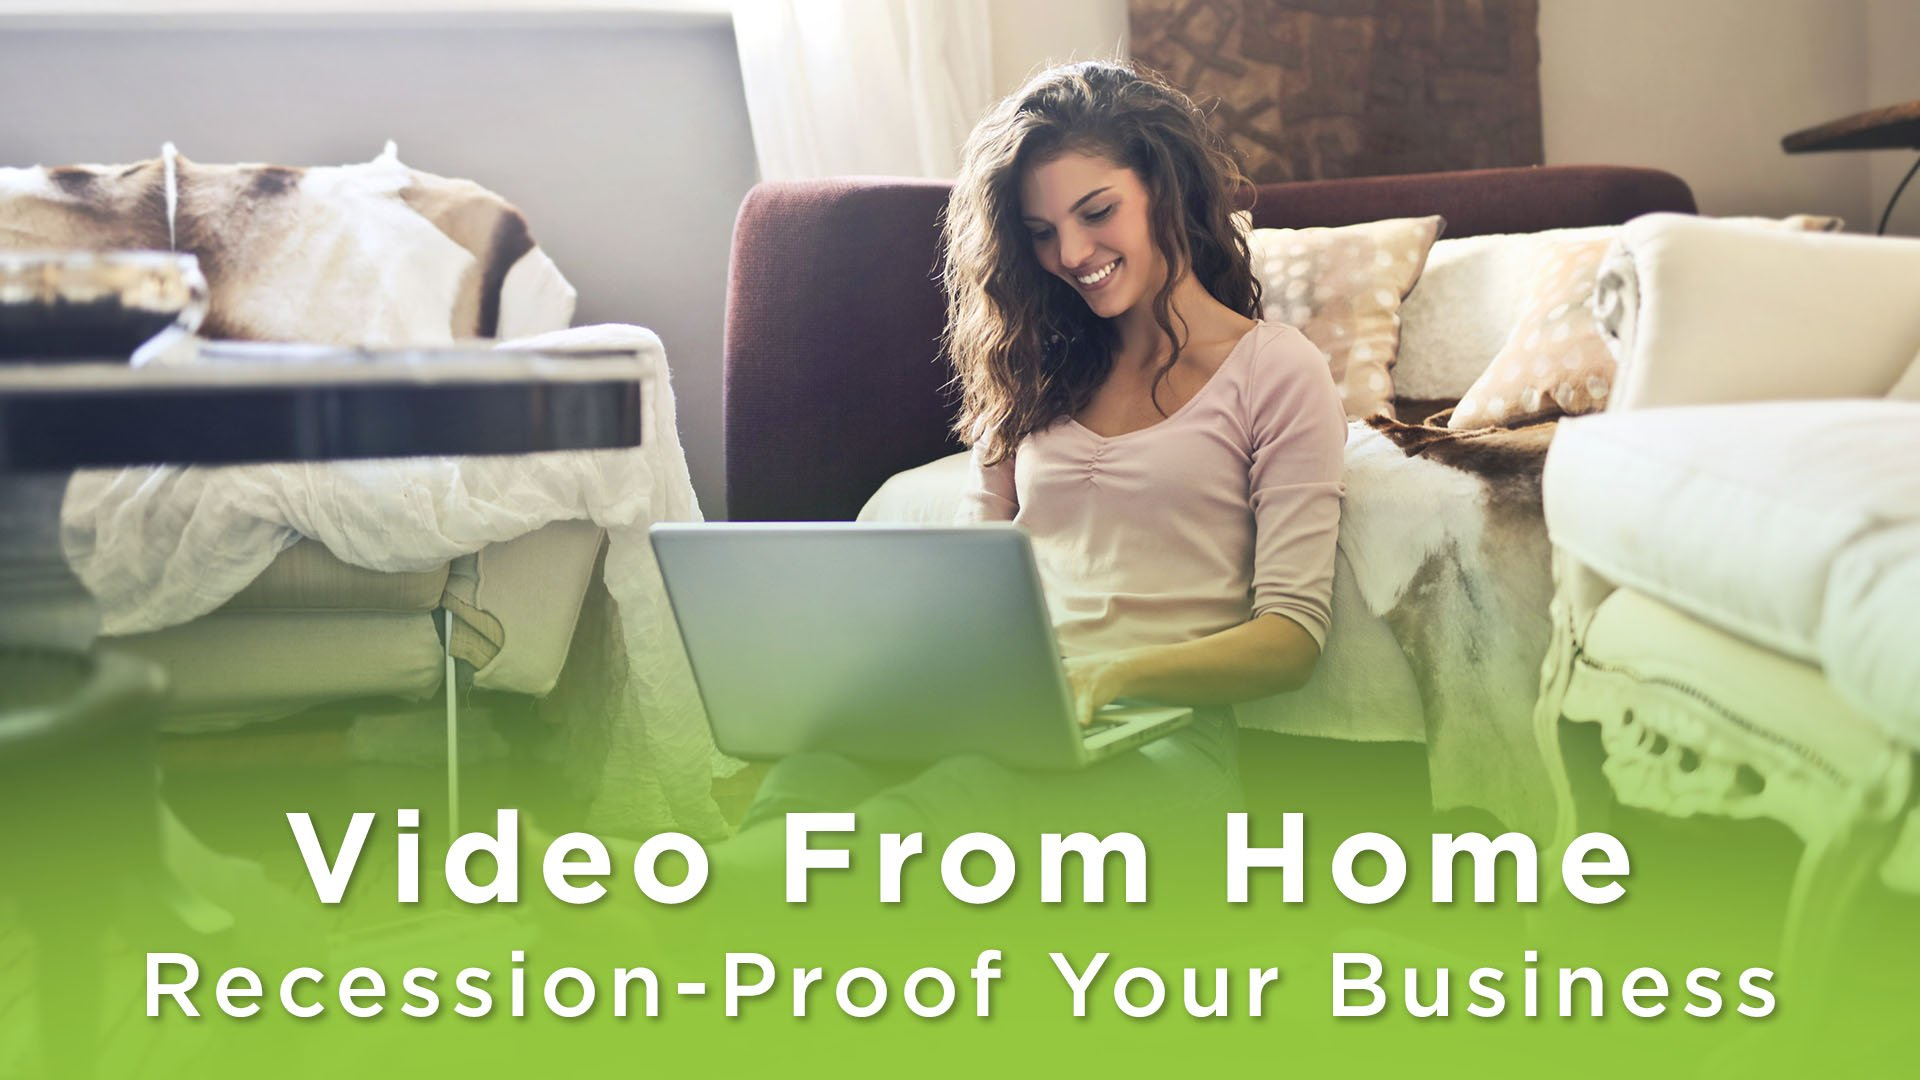 A Woman on a laptop at home. Text says: Video From Home